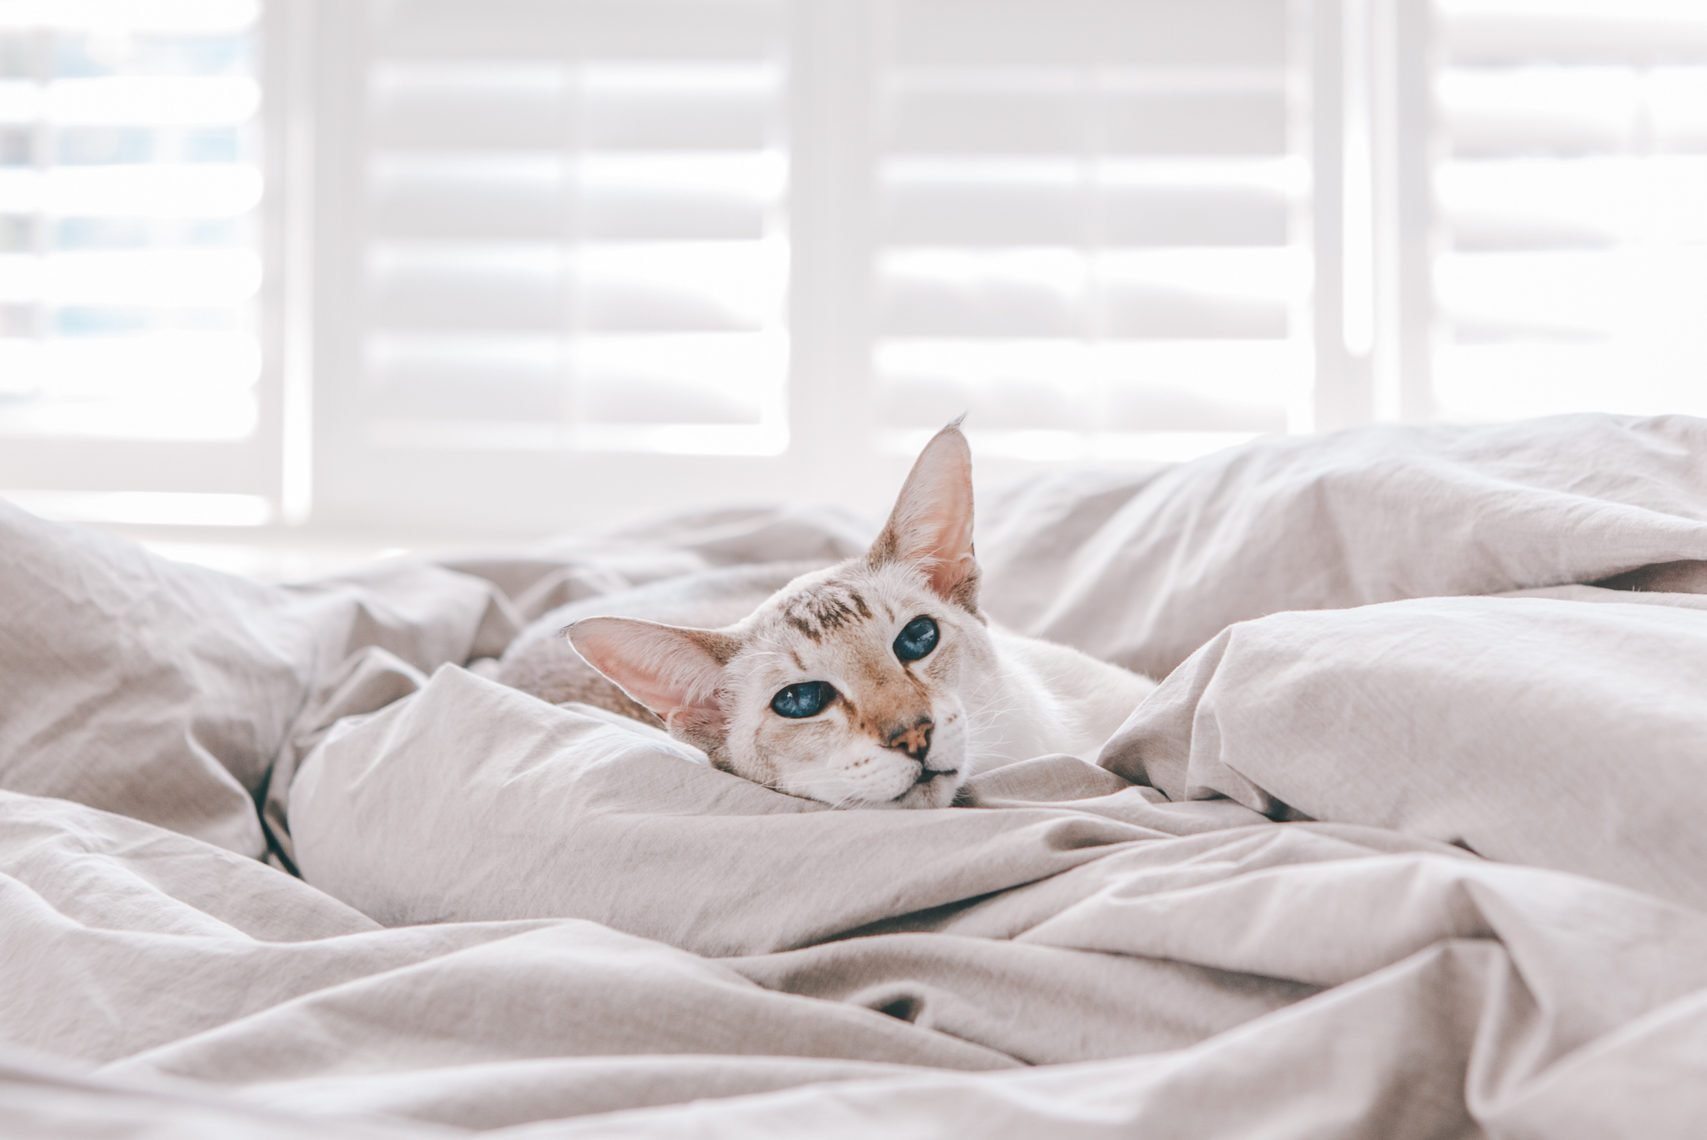 Beautiful blue-eyed oriental breed cat lying resting on bed at home looking at camera. Fluffy hairy domestic pet with blue eyes relaxing at home. Adorable furry animal feline friend. Domestic life.